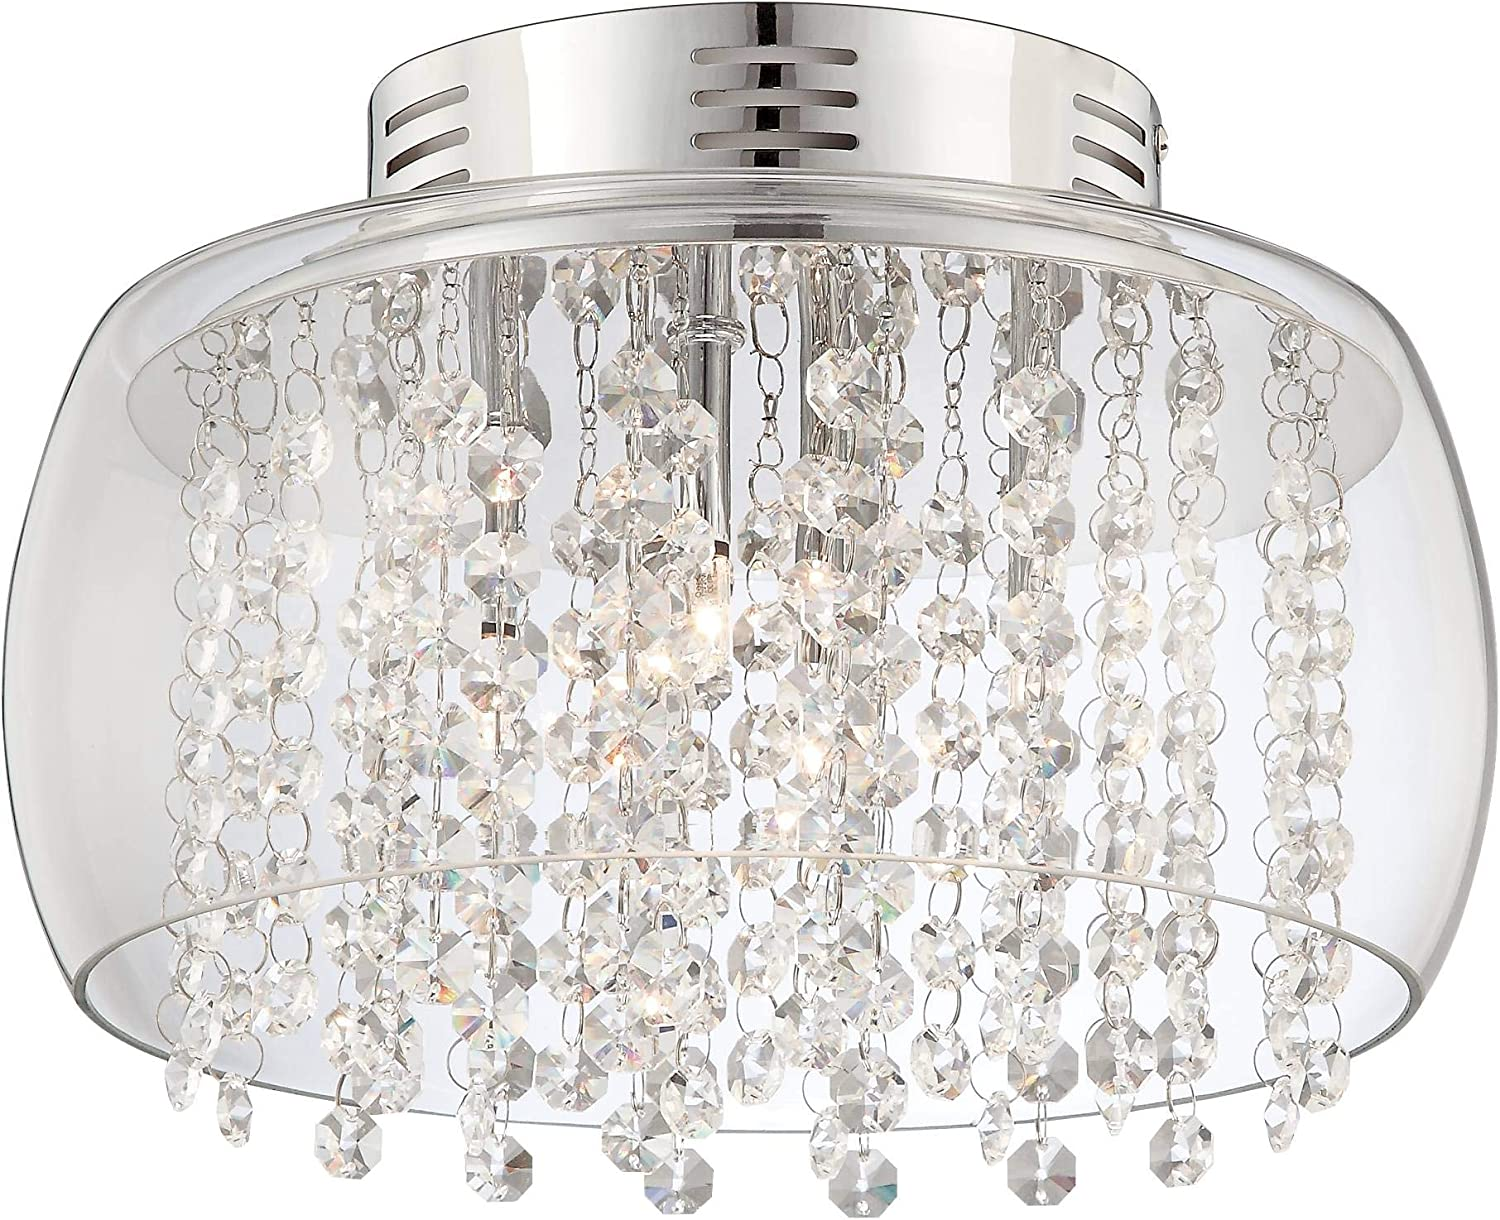 Crystal Rainfall Contemporary Modern Ceiling Light Flush Mount Fixture Chrome 11 Wide Clear Glass Drum Shade For House Bedroom Hallway Living Room Bathroom Dining Kitchen Possini Euro Design Flush Mount